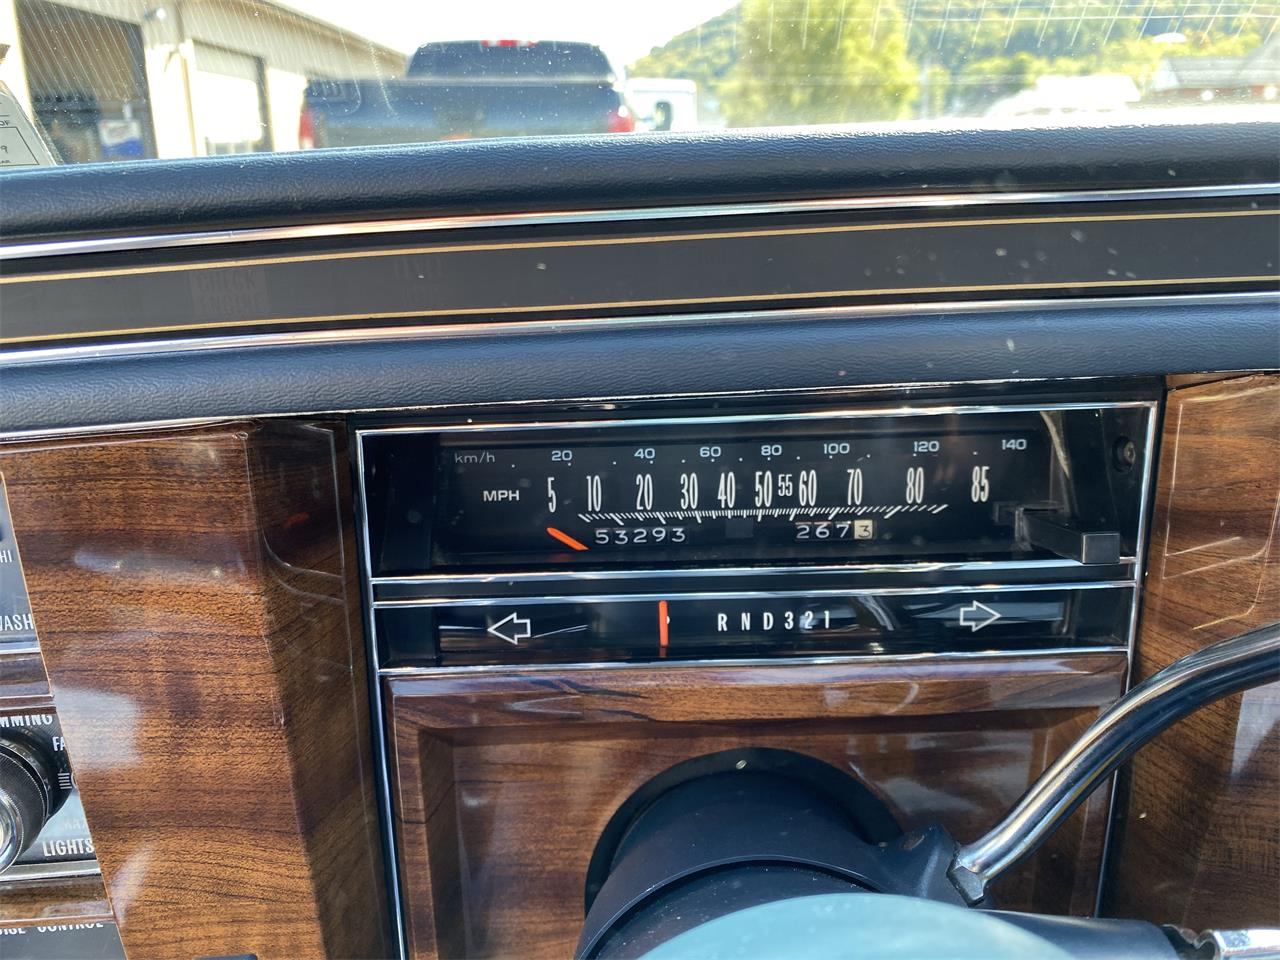 1986 Cadillac Fleetwood Brougham (CC-1295179) for sale in MILL HALL, PA